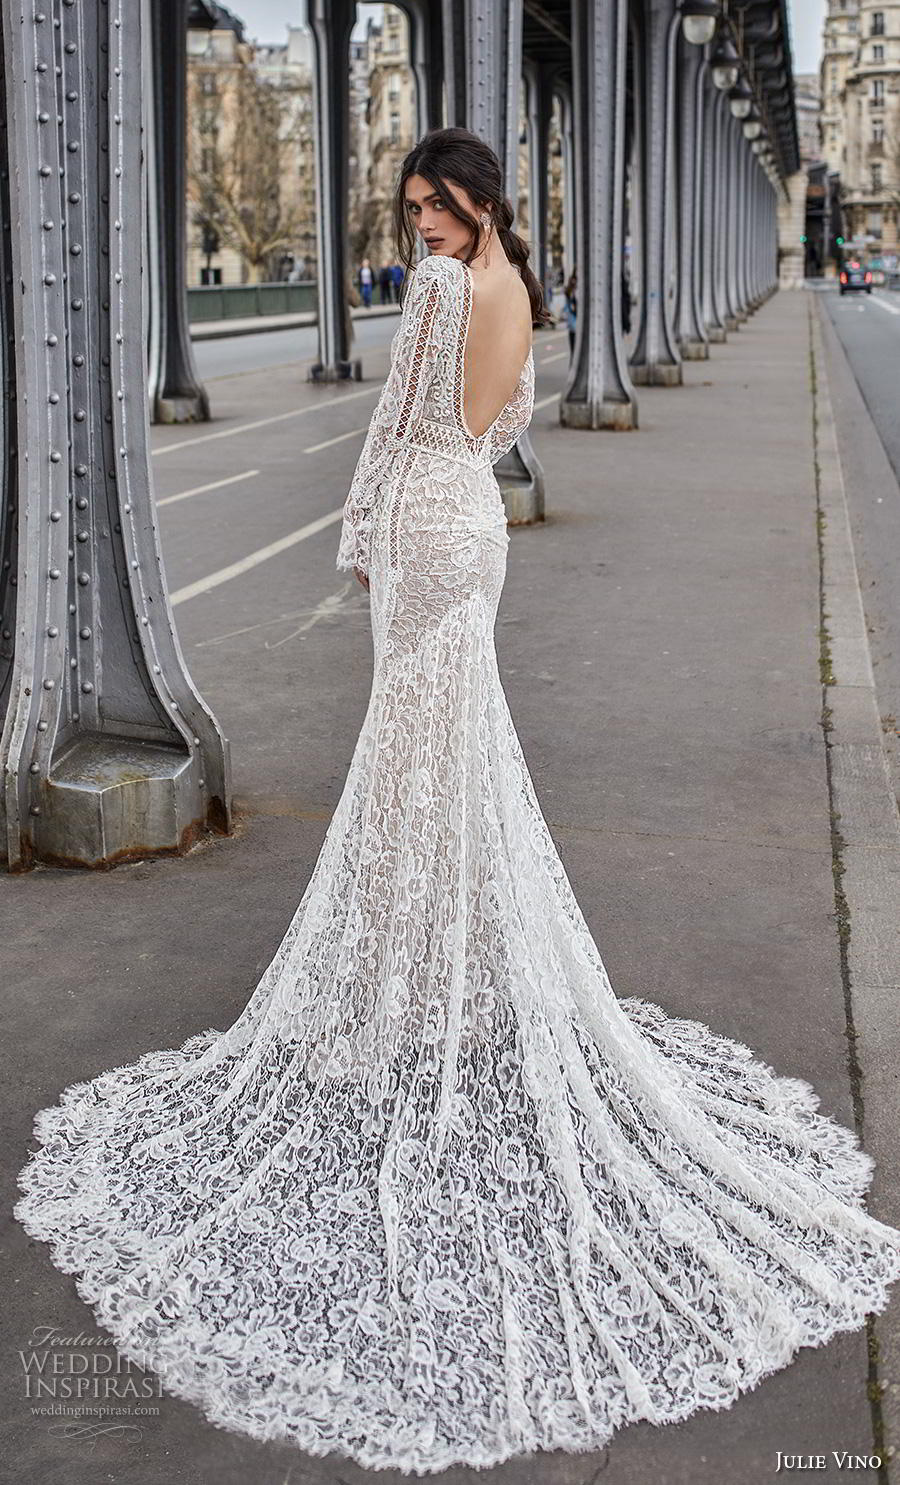 julie vino 2019 paris bridal long sleeves deep v neck full embellishment sexy elegant sheath fit and flare wedding dress backless v back chapel train (14) bv